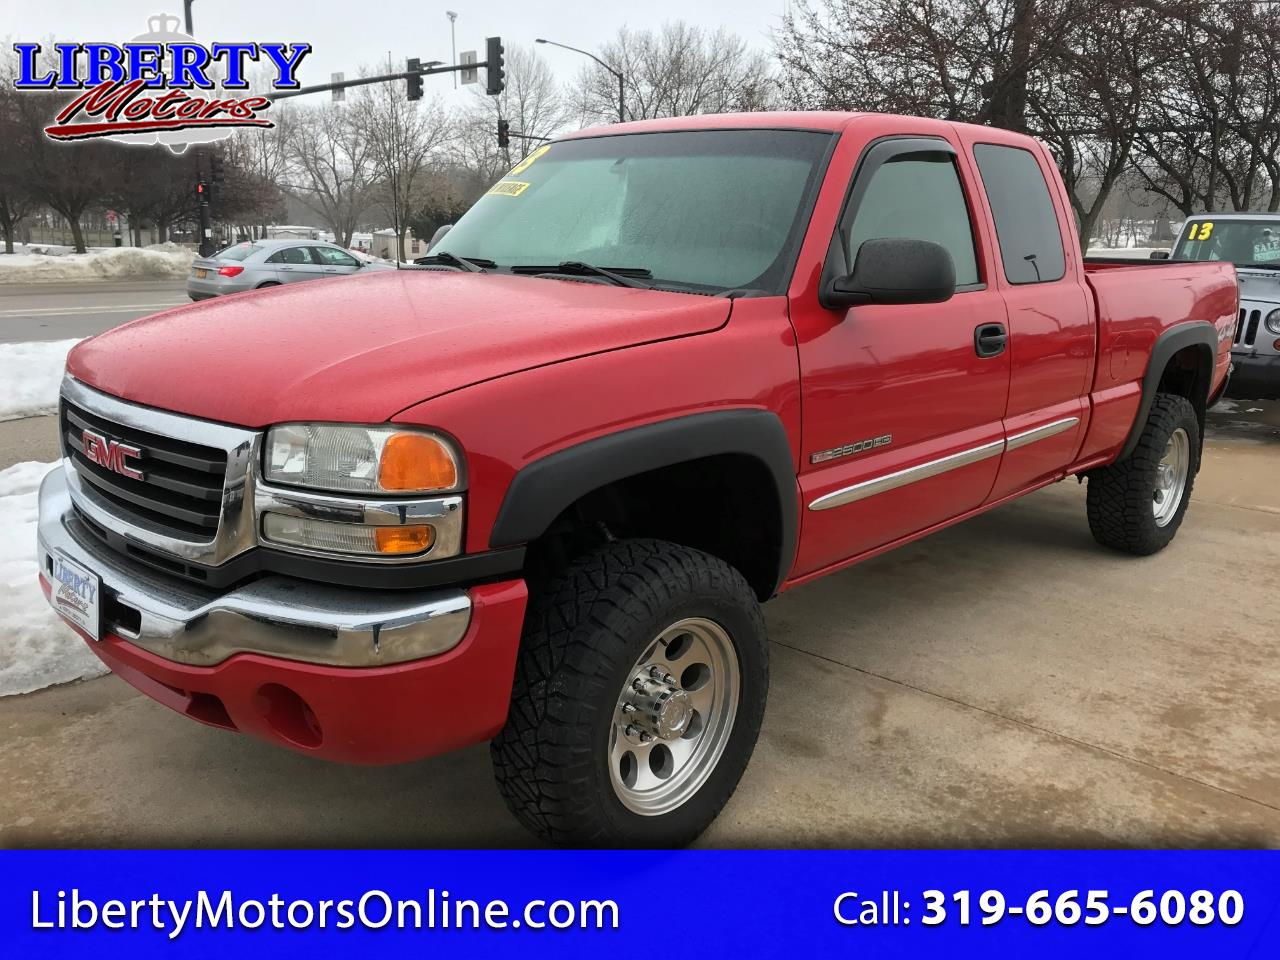 2003 GMC Sierra 2500HD Ext. Cab Short Bed 4WD